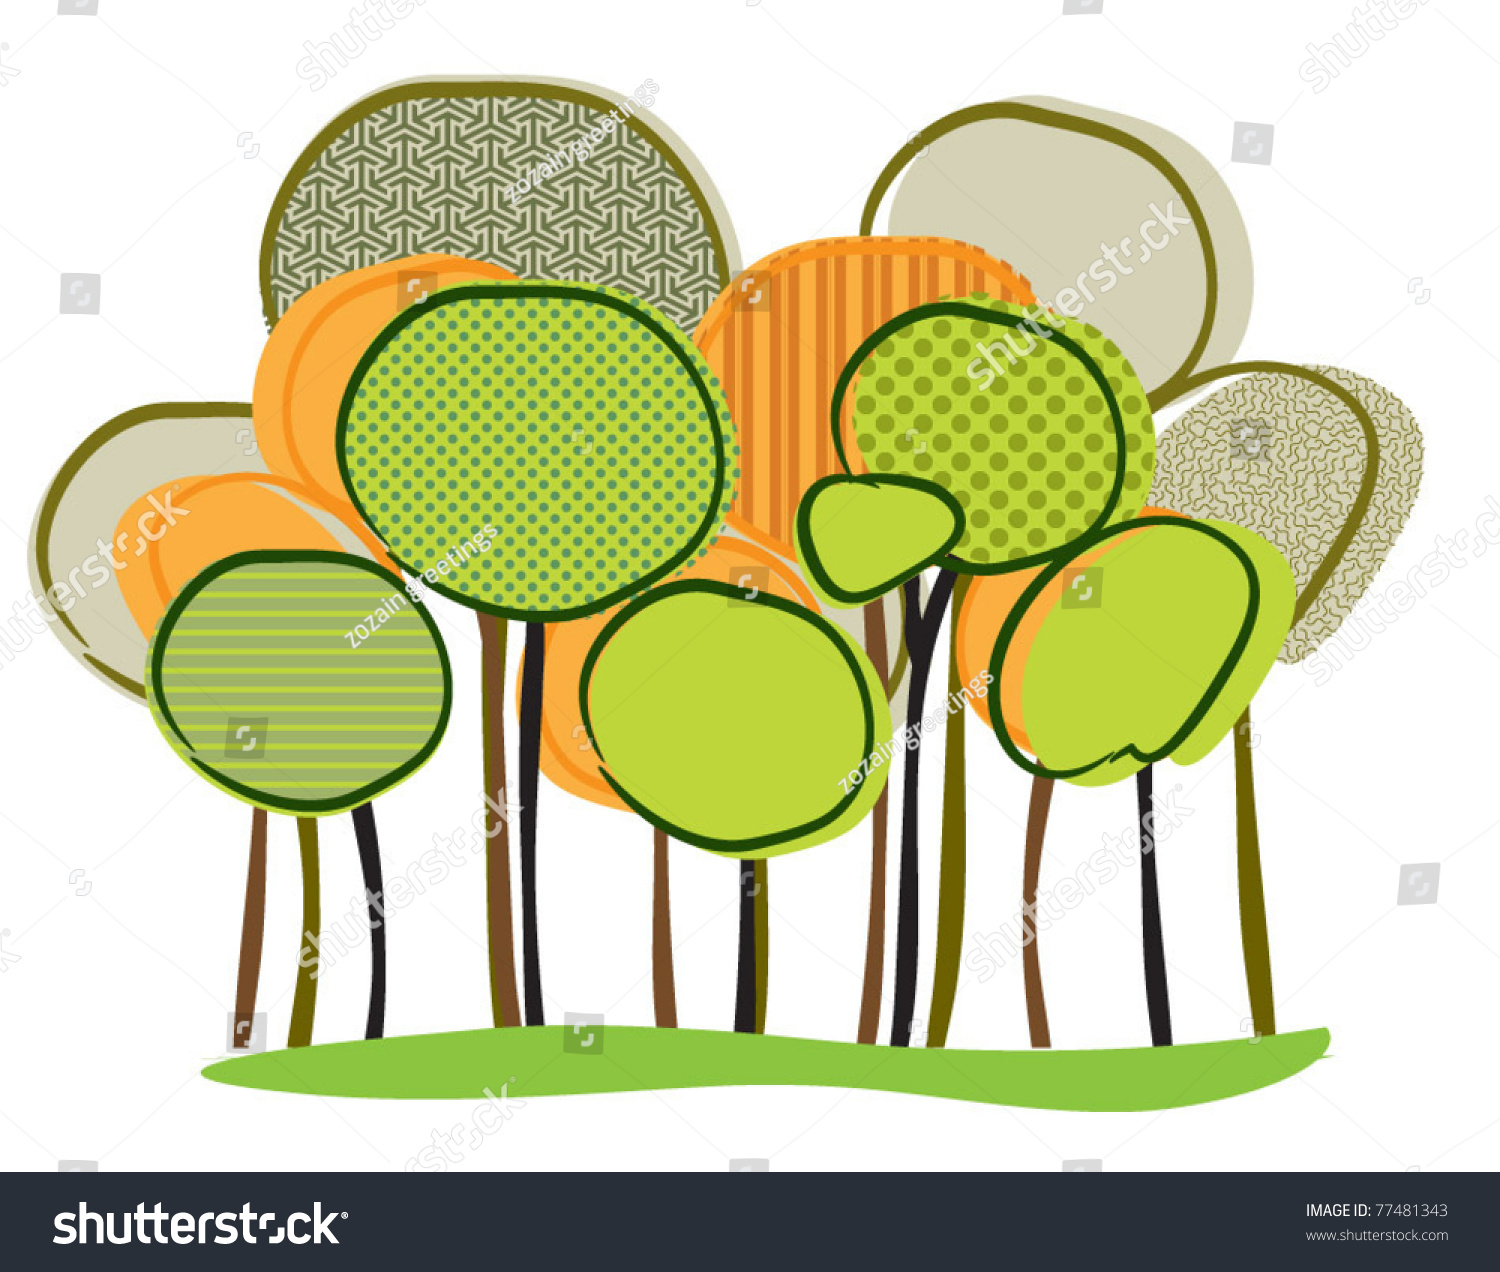 Set Abstract Trees Stock Vector 77481343 - Shutterstock